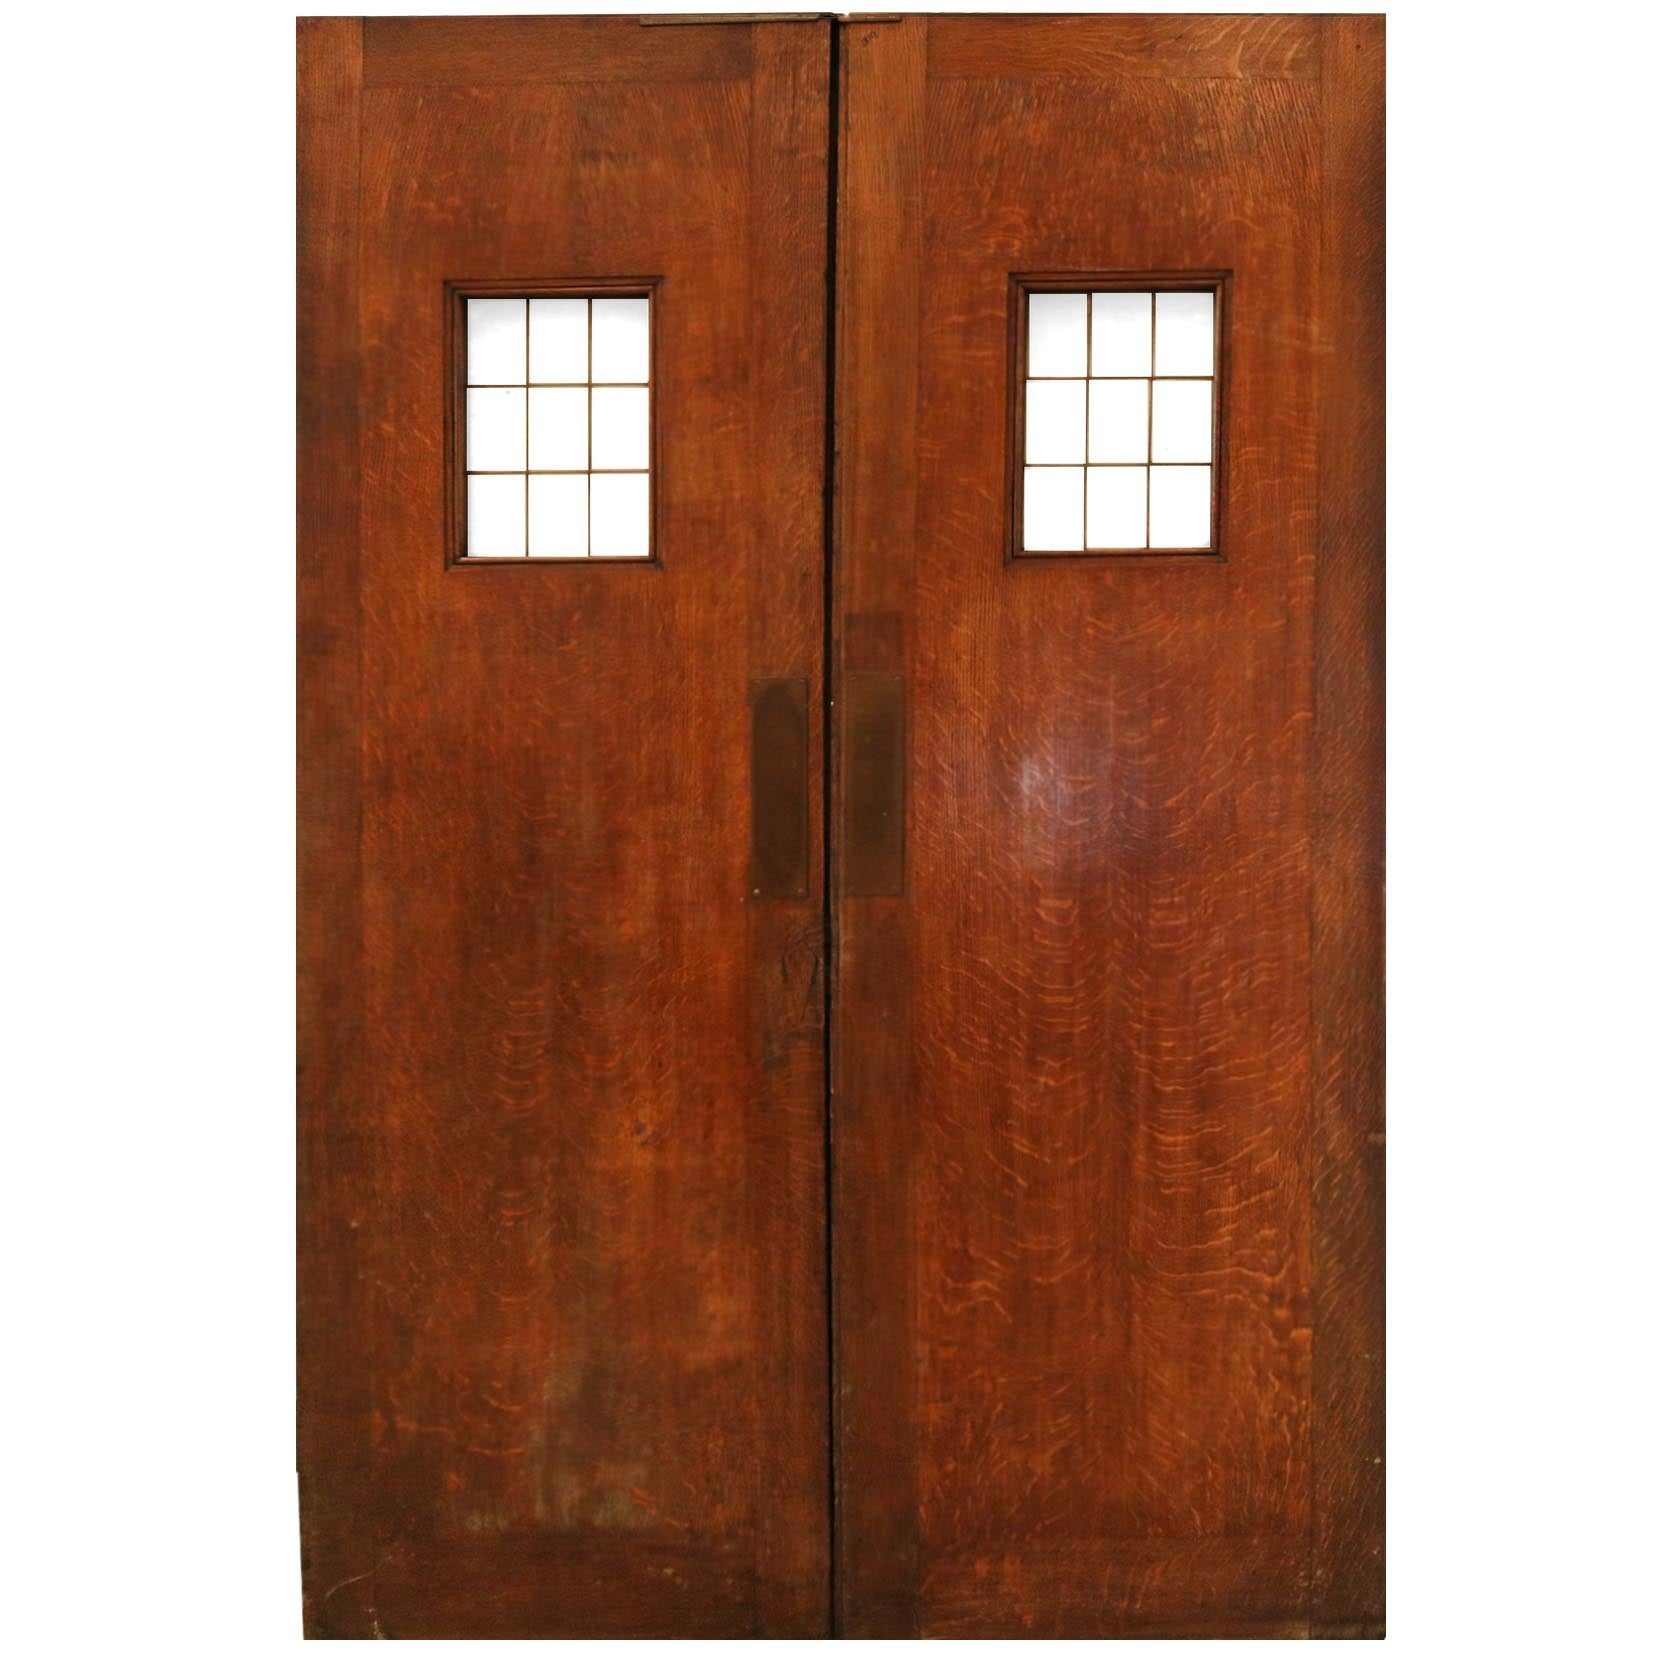 Vintage 1930's Solid Oak Double Doors - architectural-forum